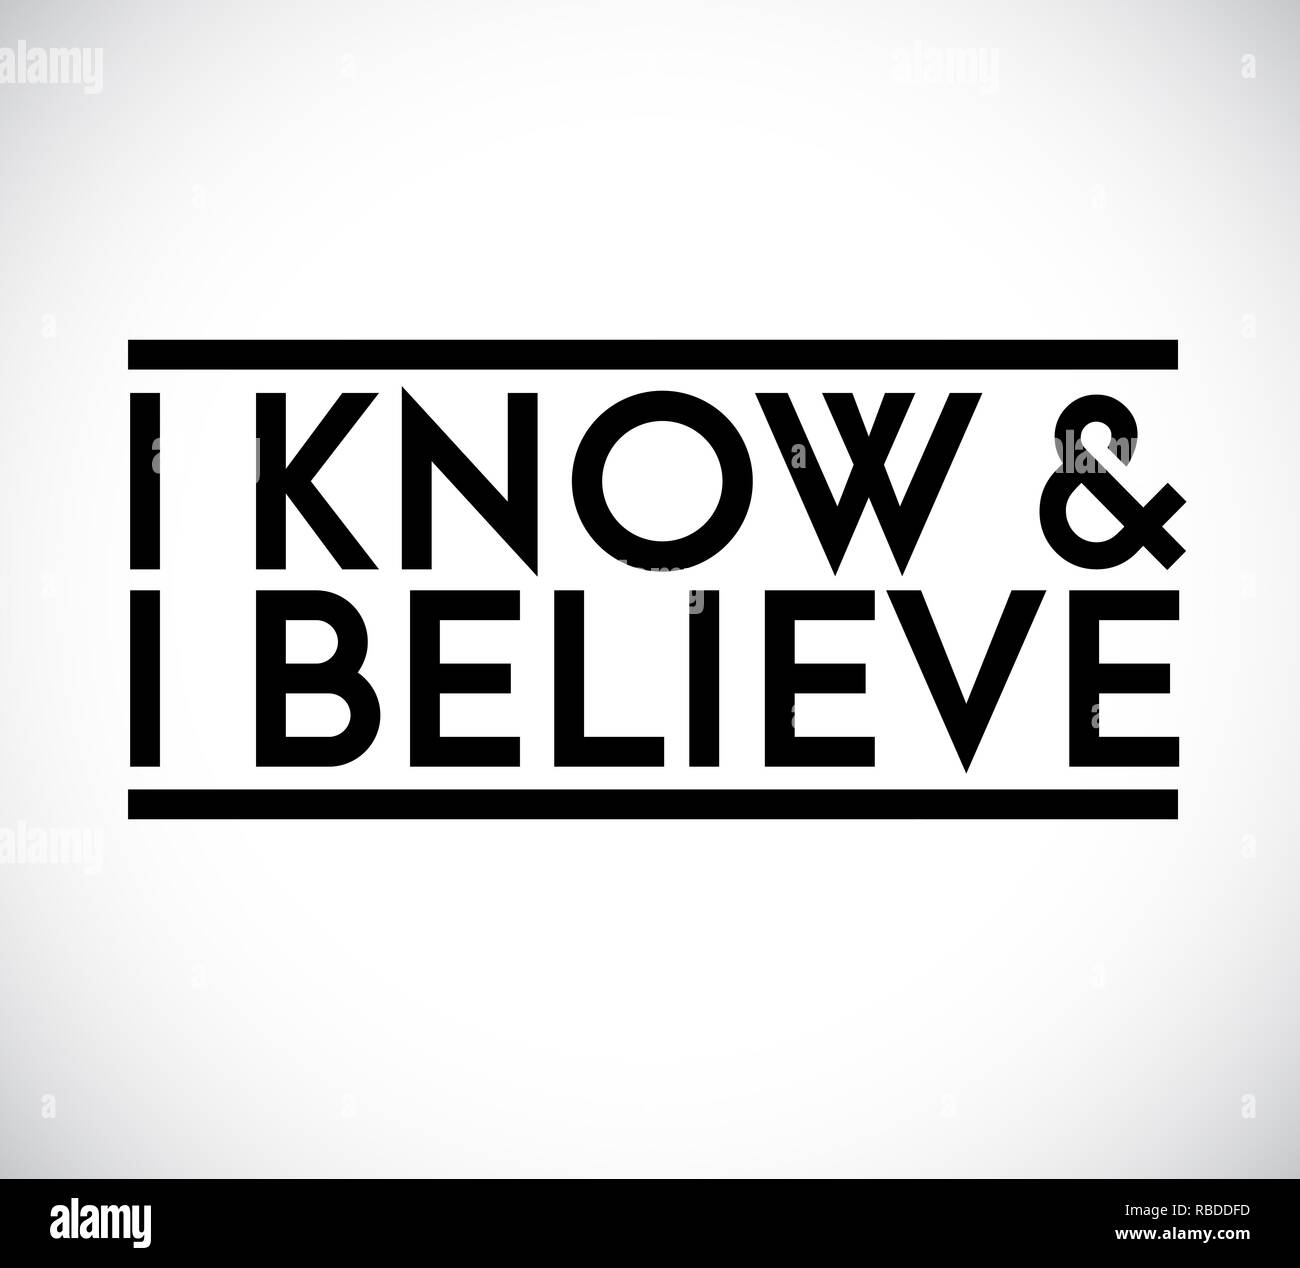 I Know, I Believe union text stamp concept. infographic illustration. Gray Background Stock Photo